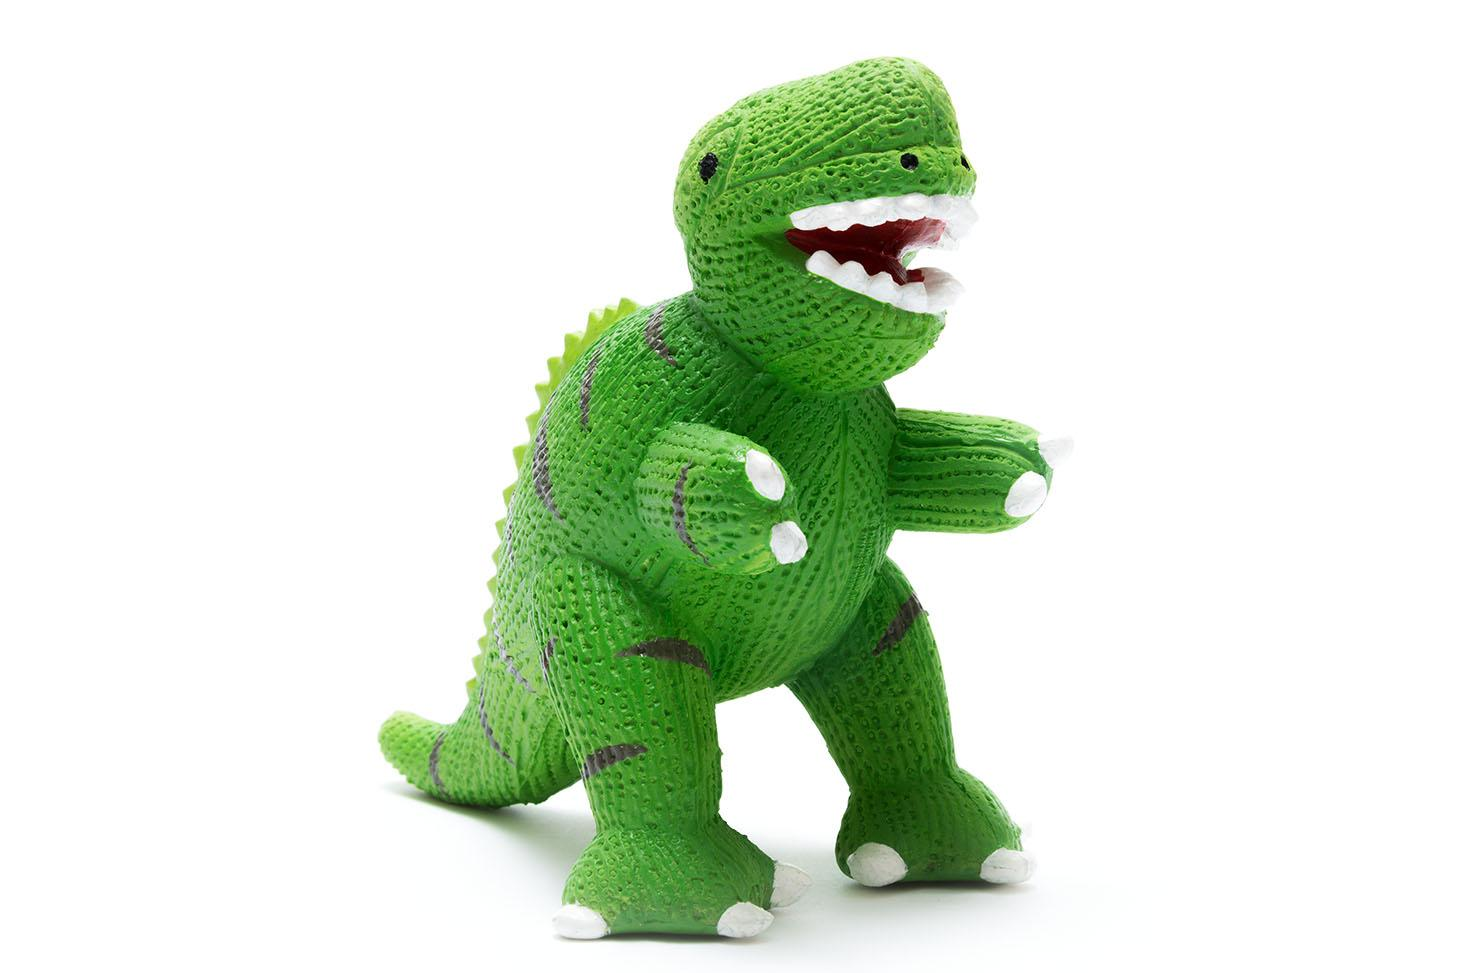 T Rex Toy : Dinosaurs my first t rex natural rubber dinosaur toy green